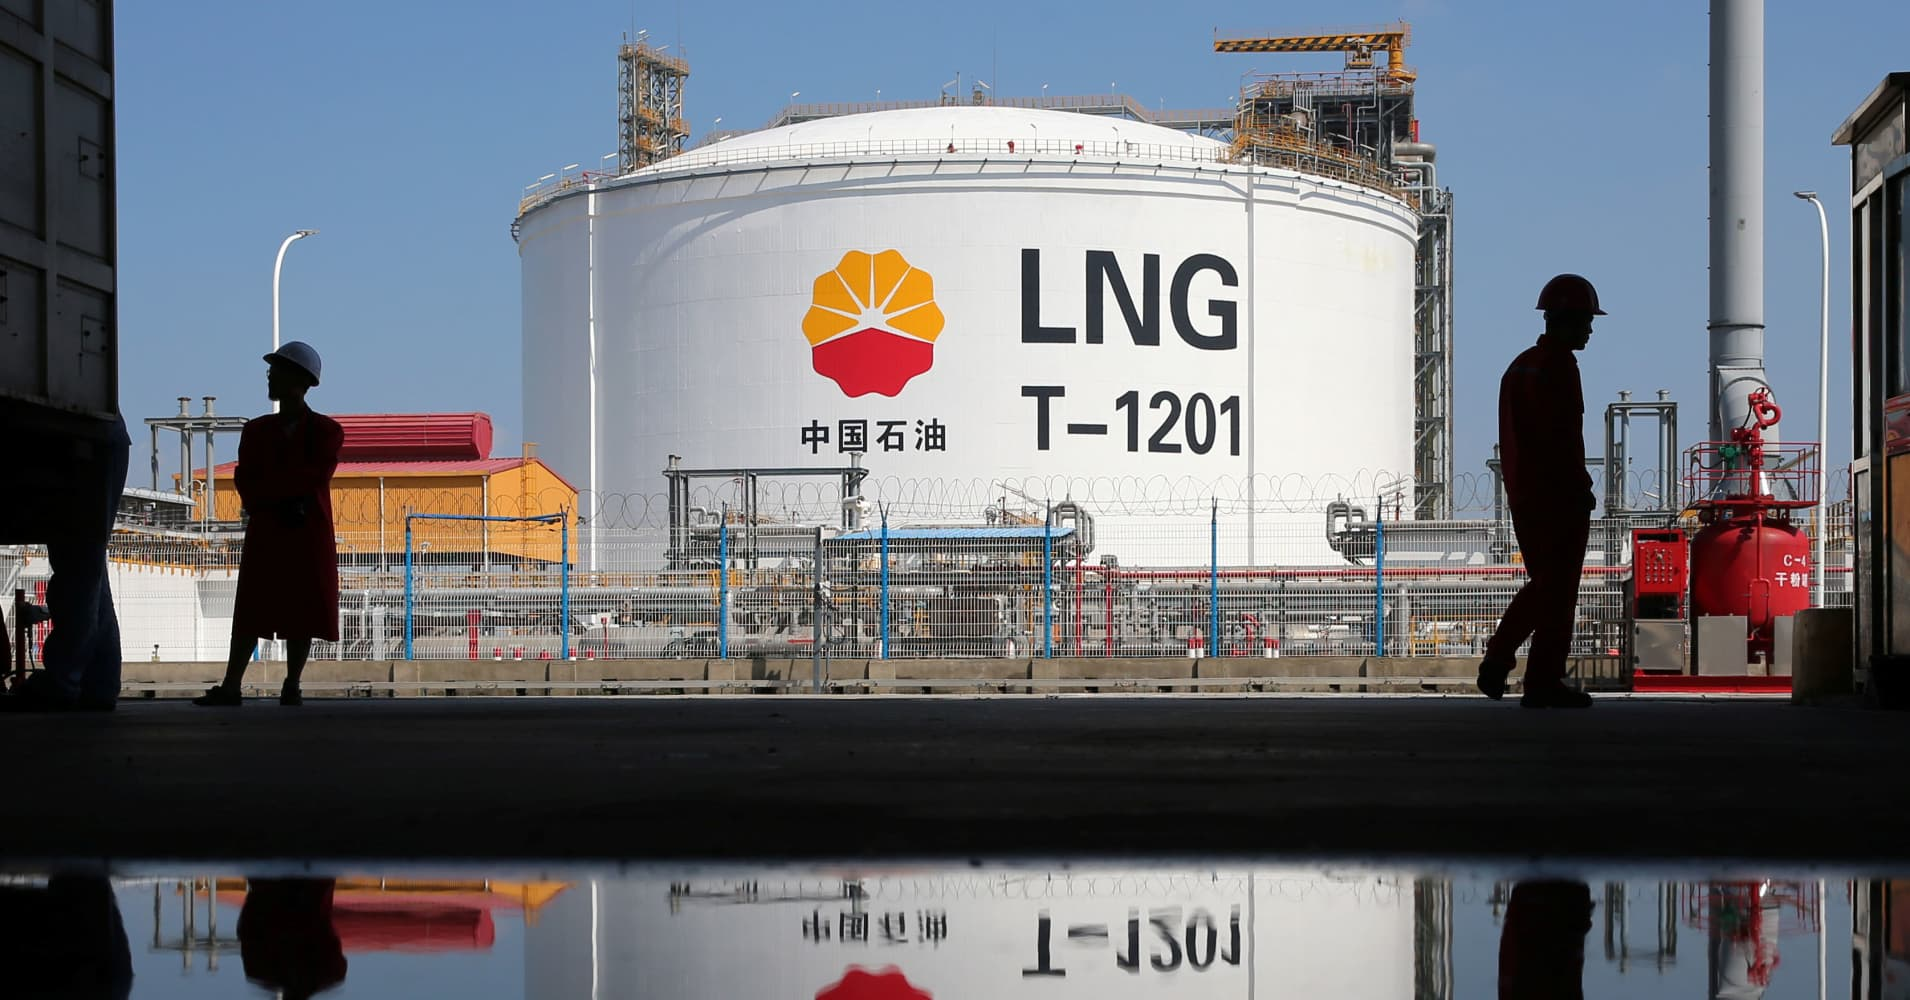 Asia's natural gas prices are rising. Now higher oil prices and tariffs could cause more pain